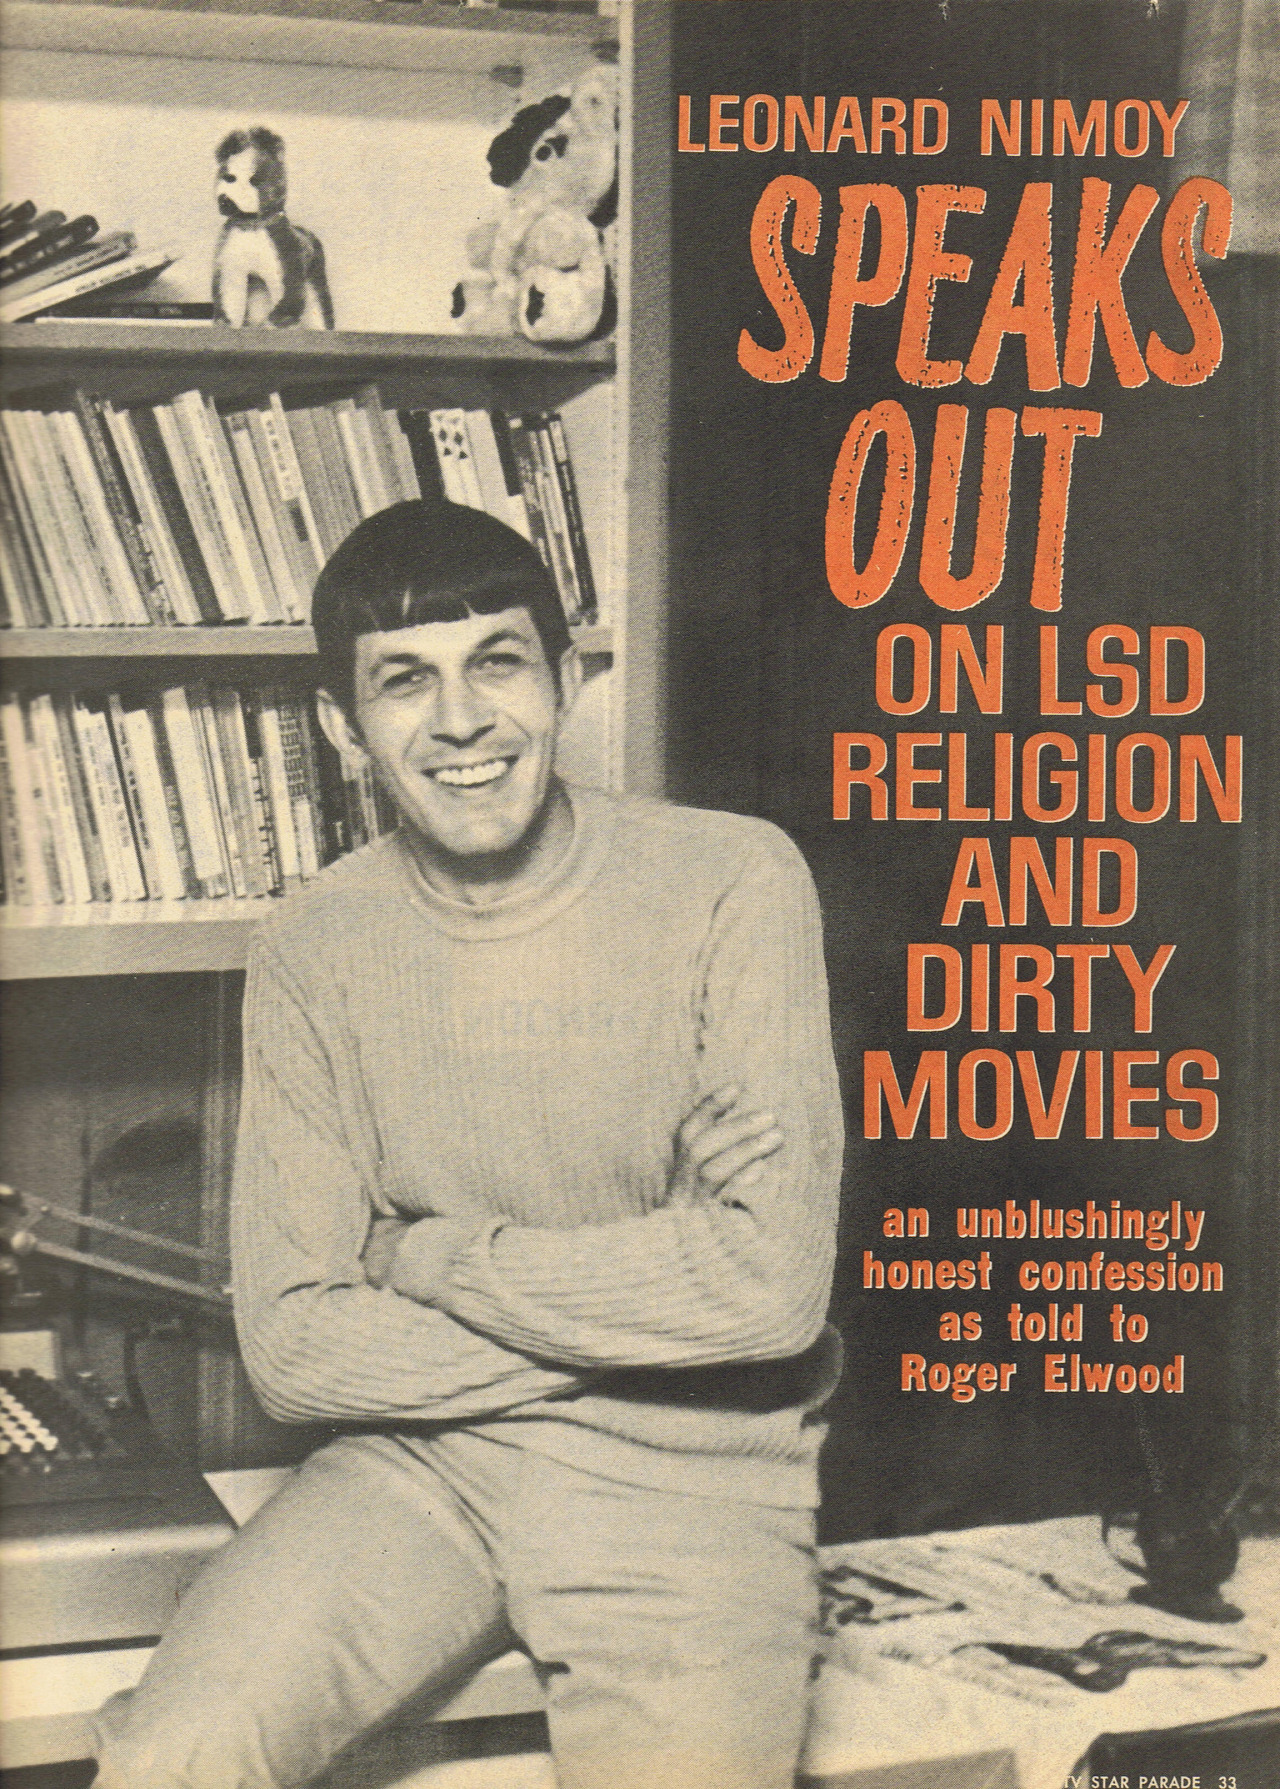 Leonard Nimoy Speaks Out on LSD, Religion and Dirty Movies